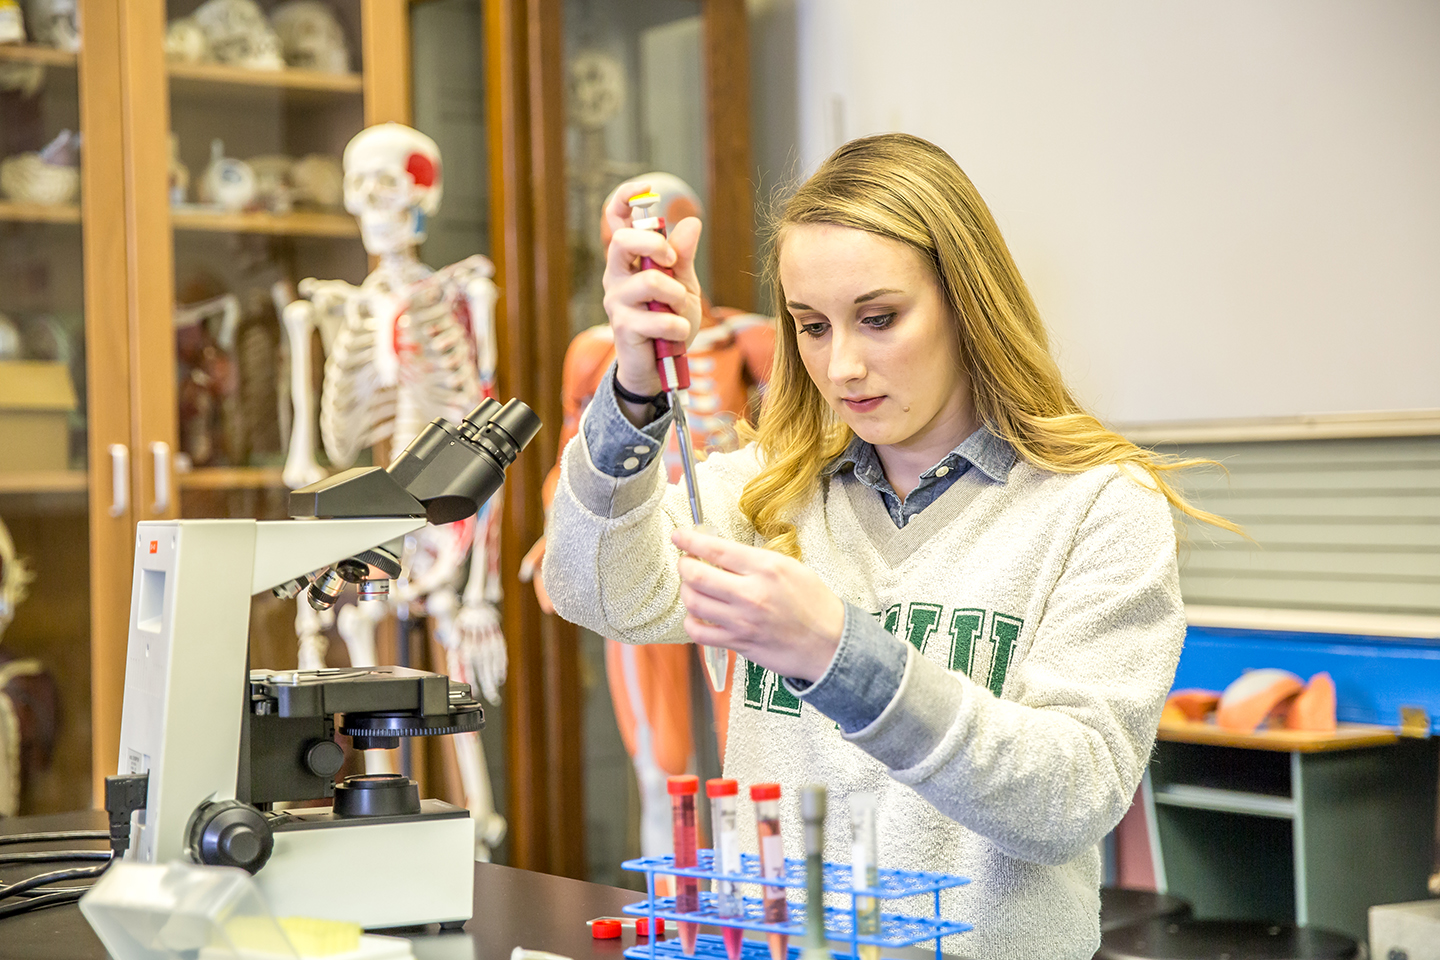 Biology student Ari Arnold working in a laboratory.